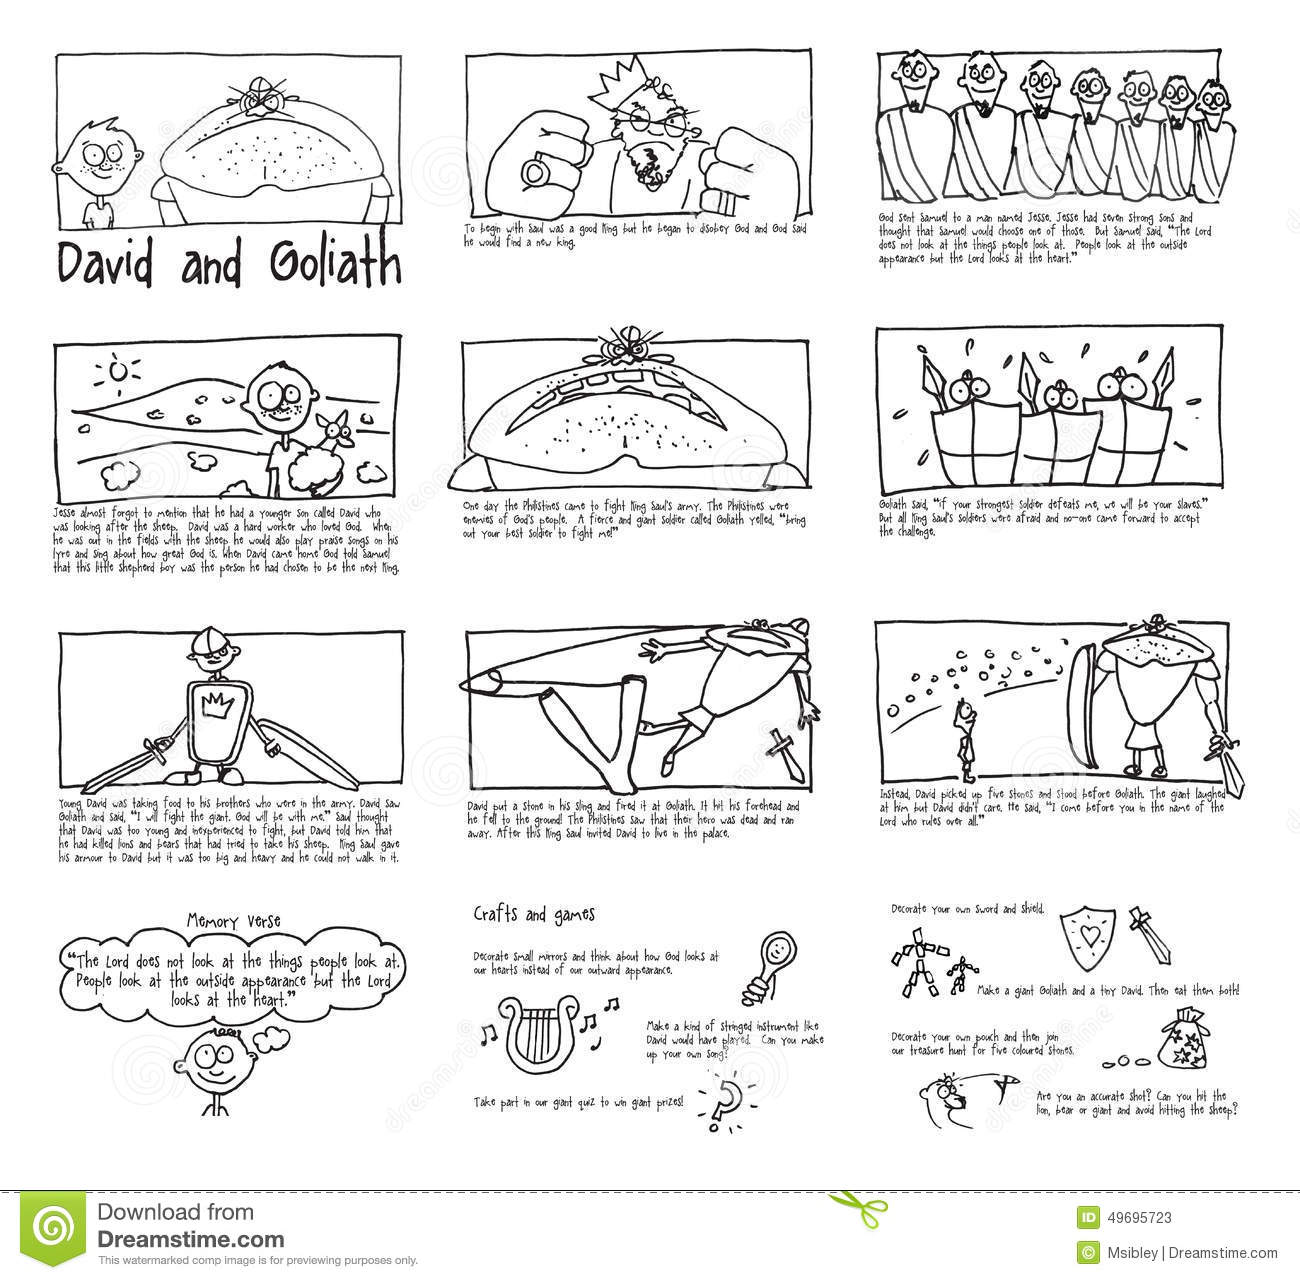 David And Goliath Sunday School Comic Strip Stock